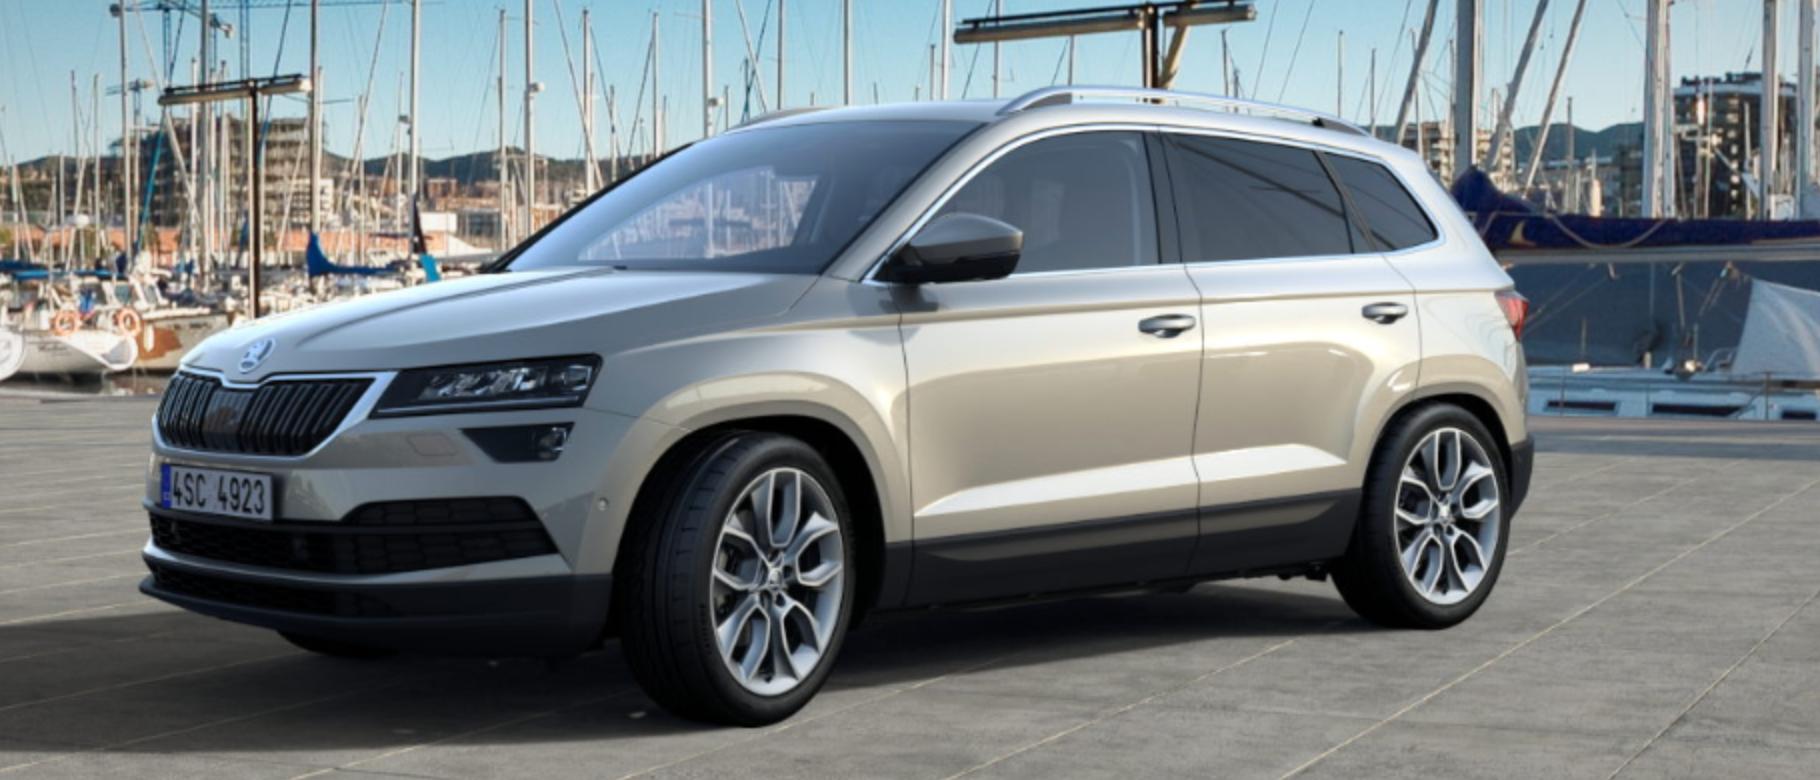 skoda karoq colours guide and prices | carwow